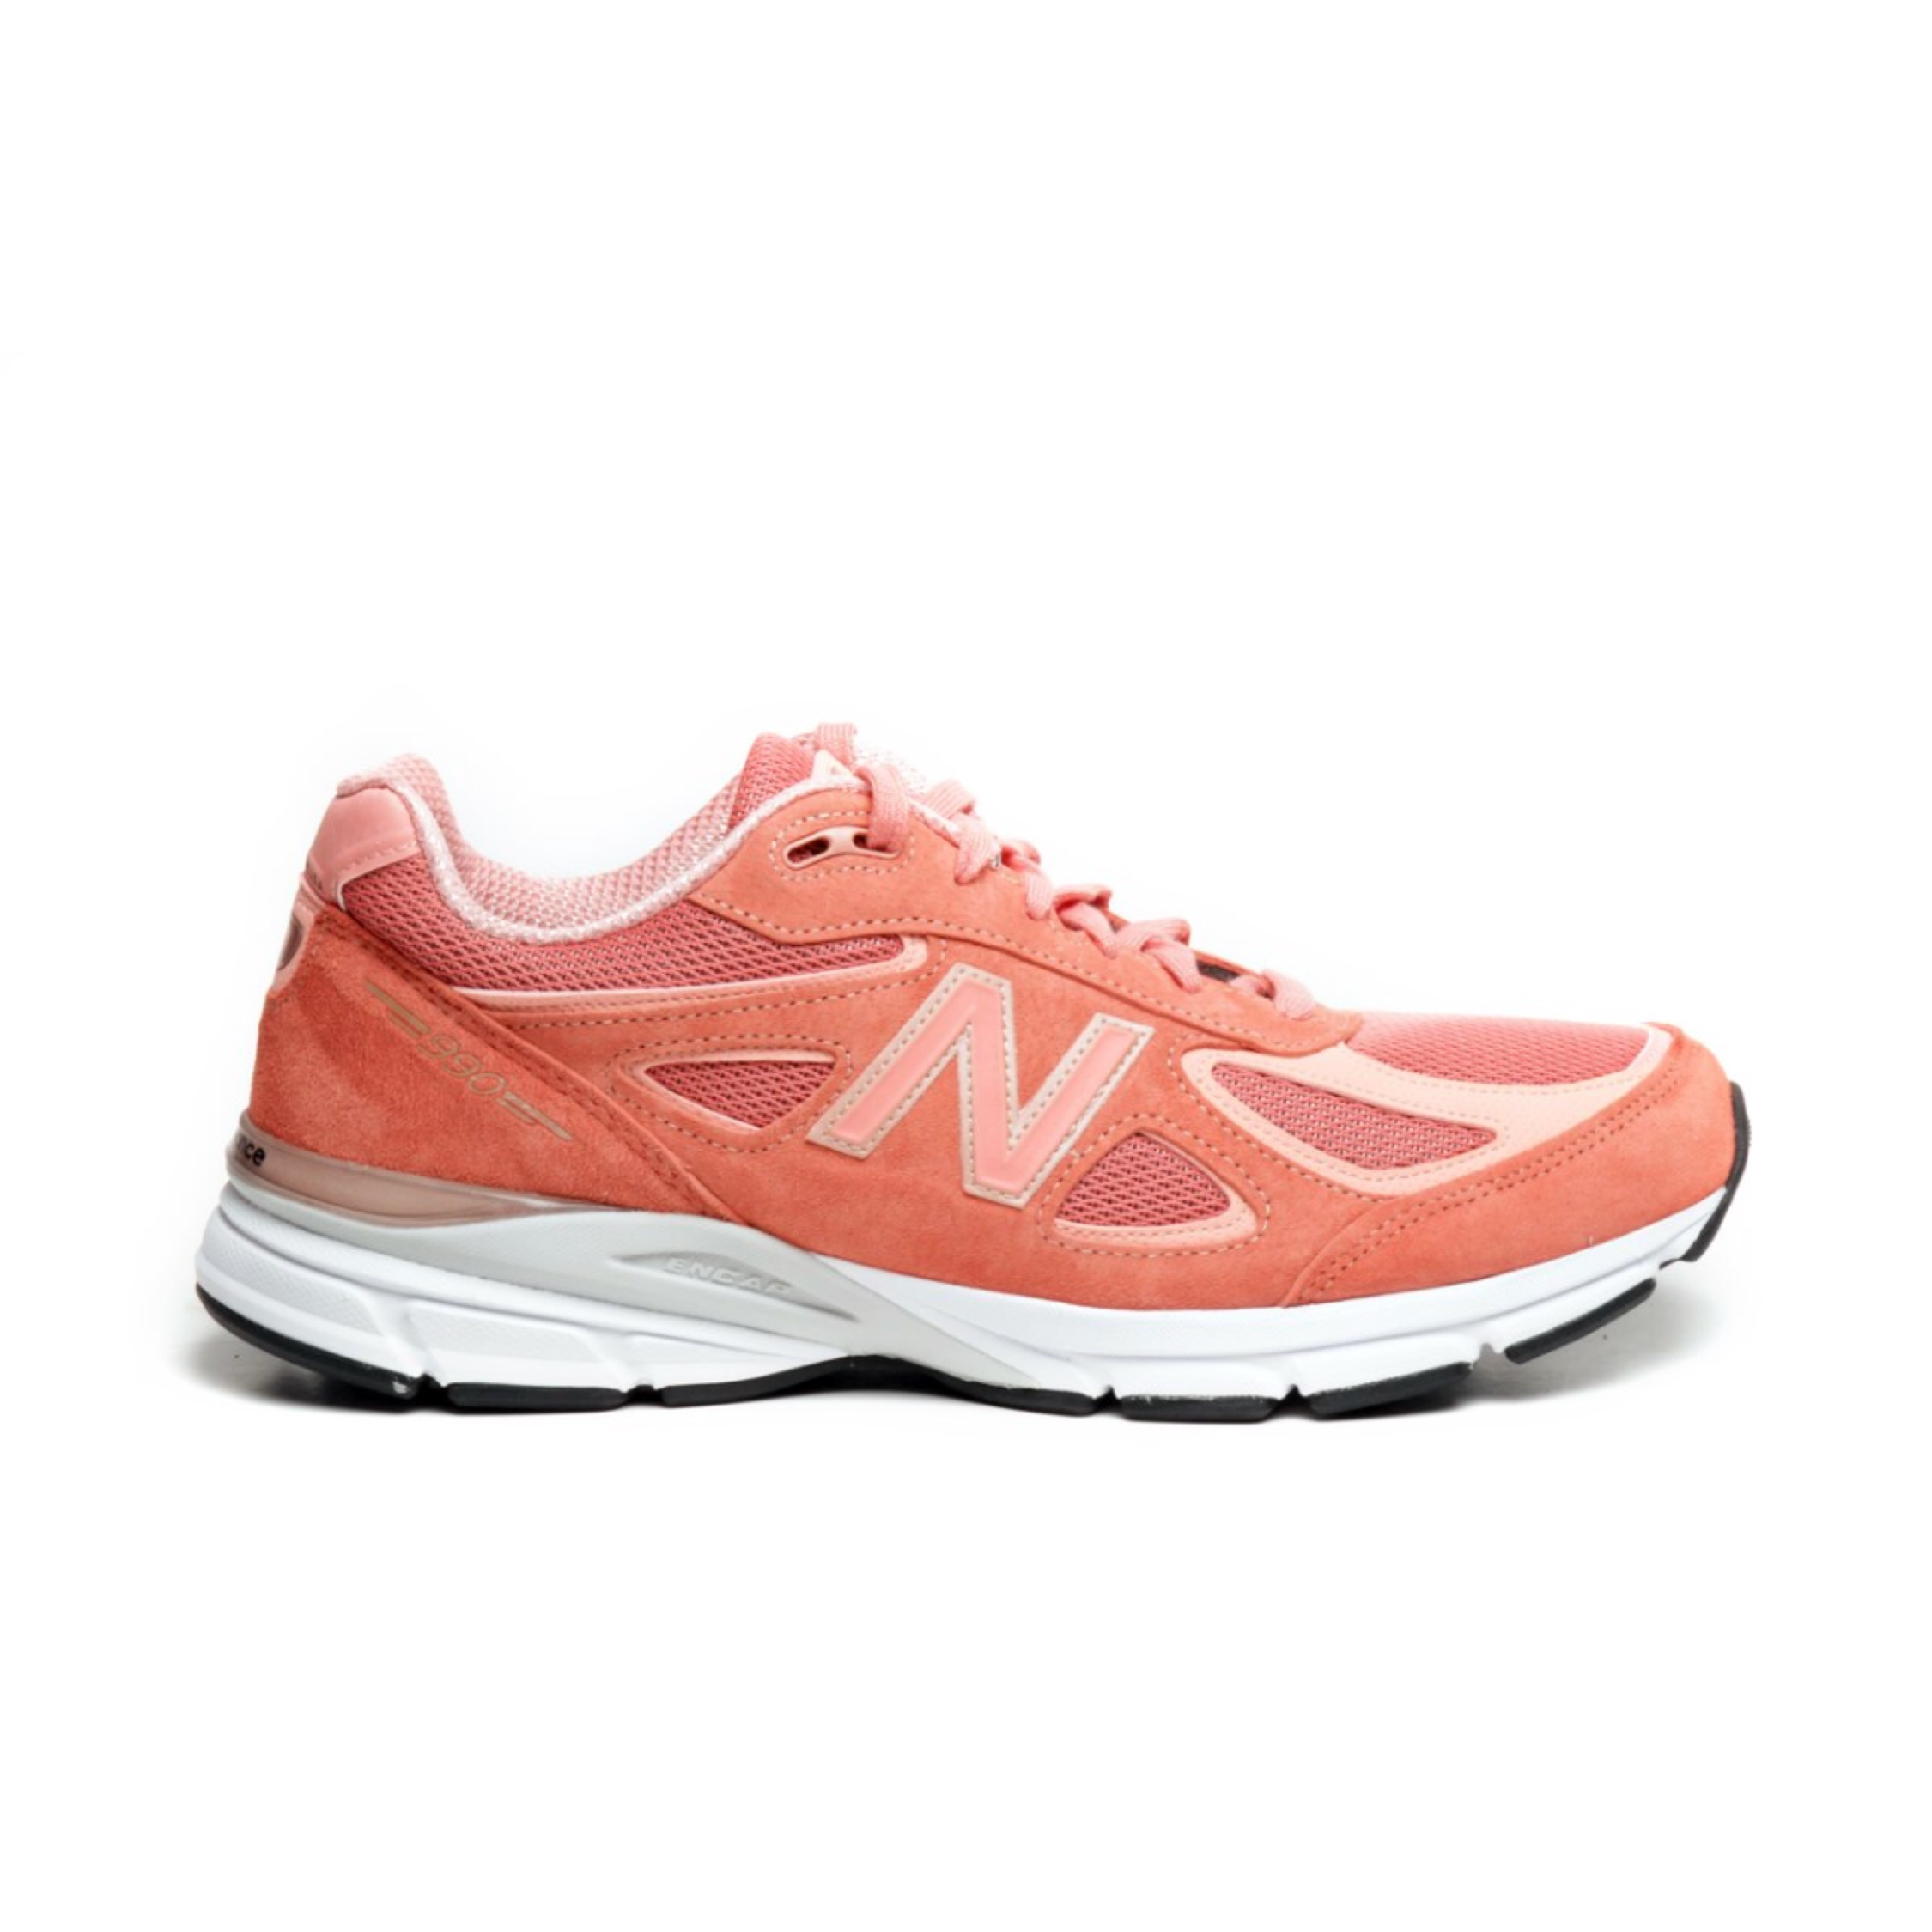 3441476d10 New Balance 990 Sr4 Rose Gold Eu36.5